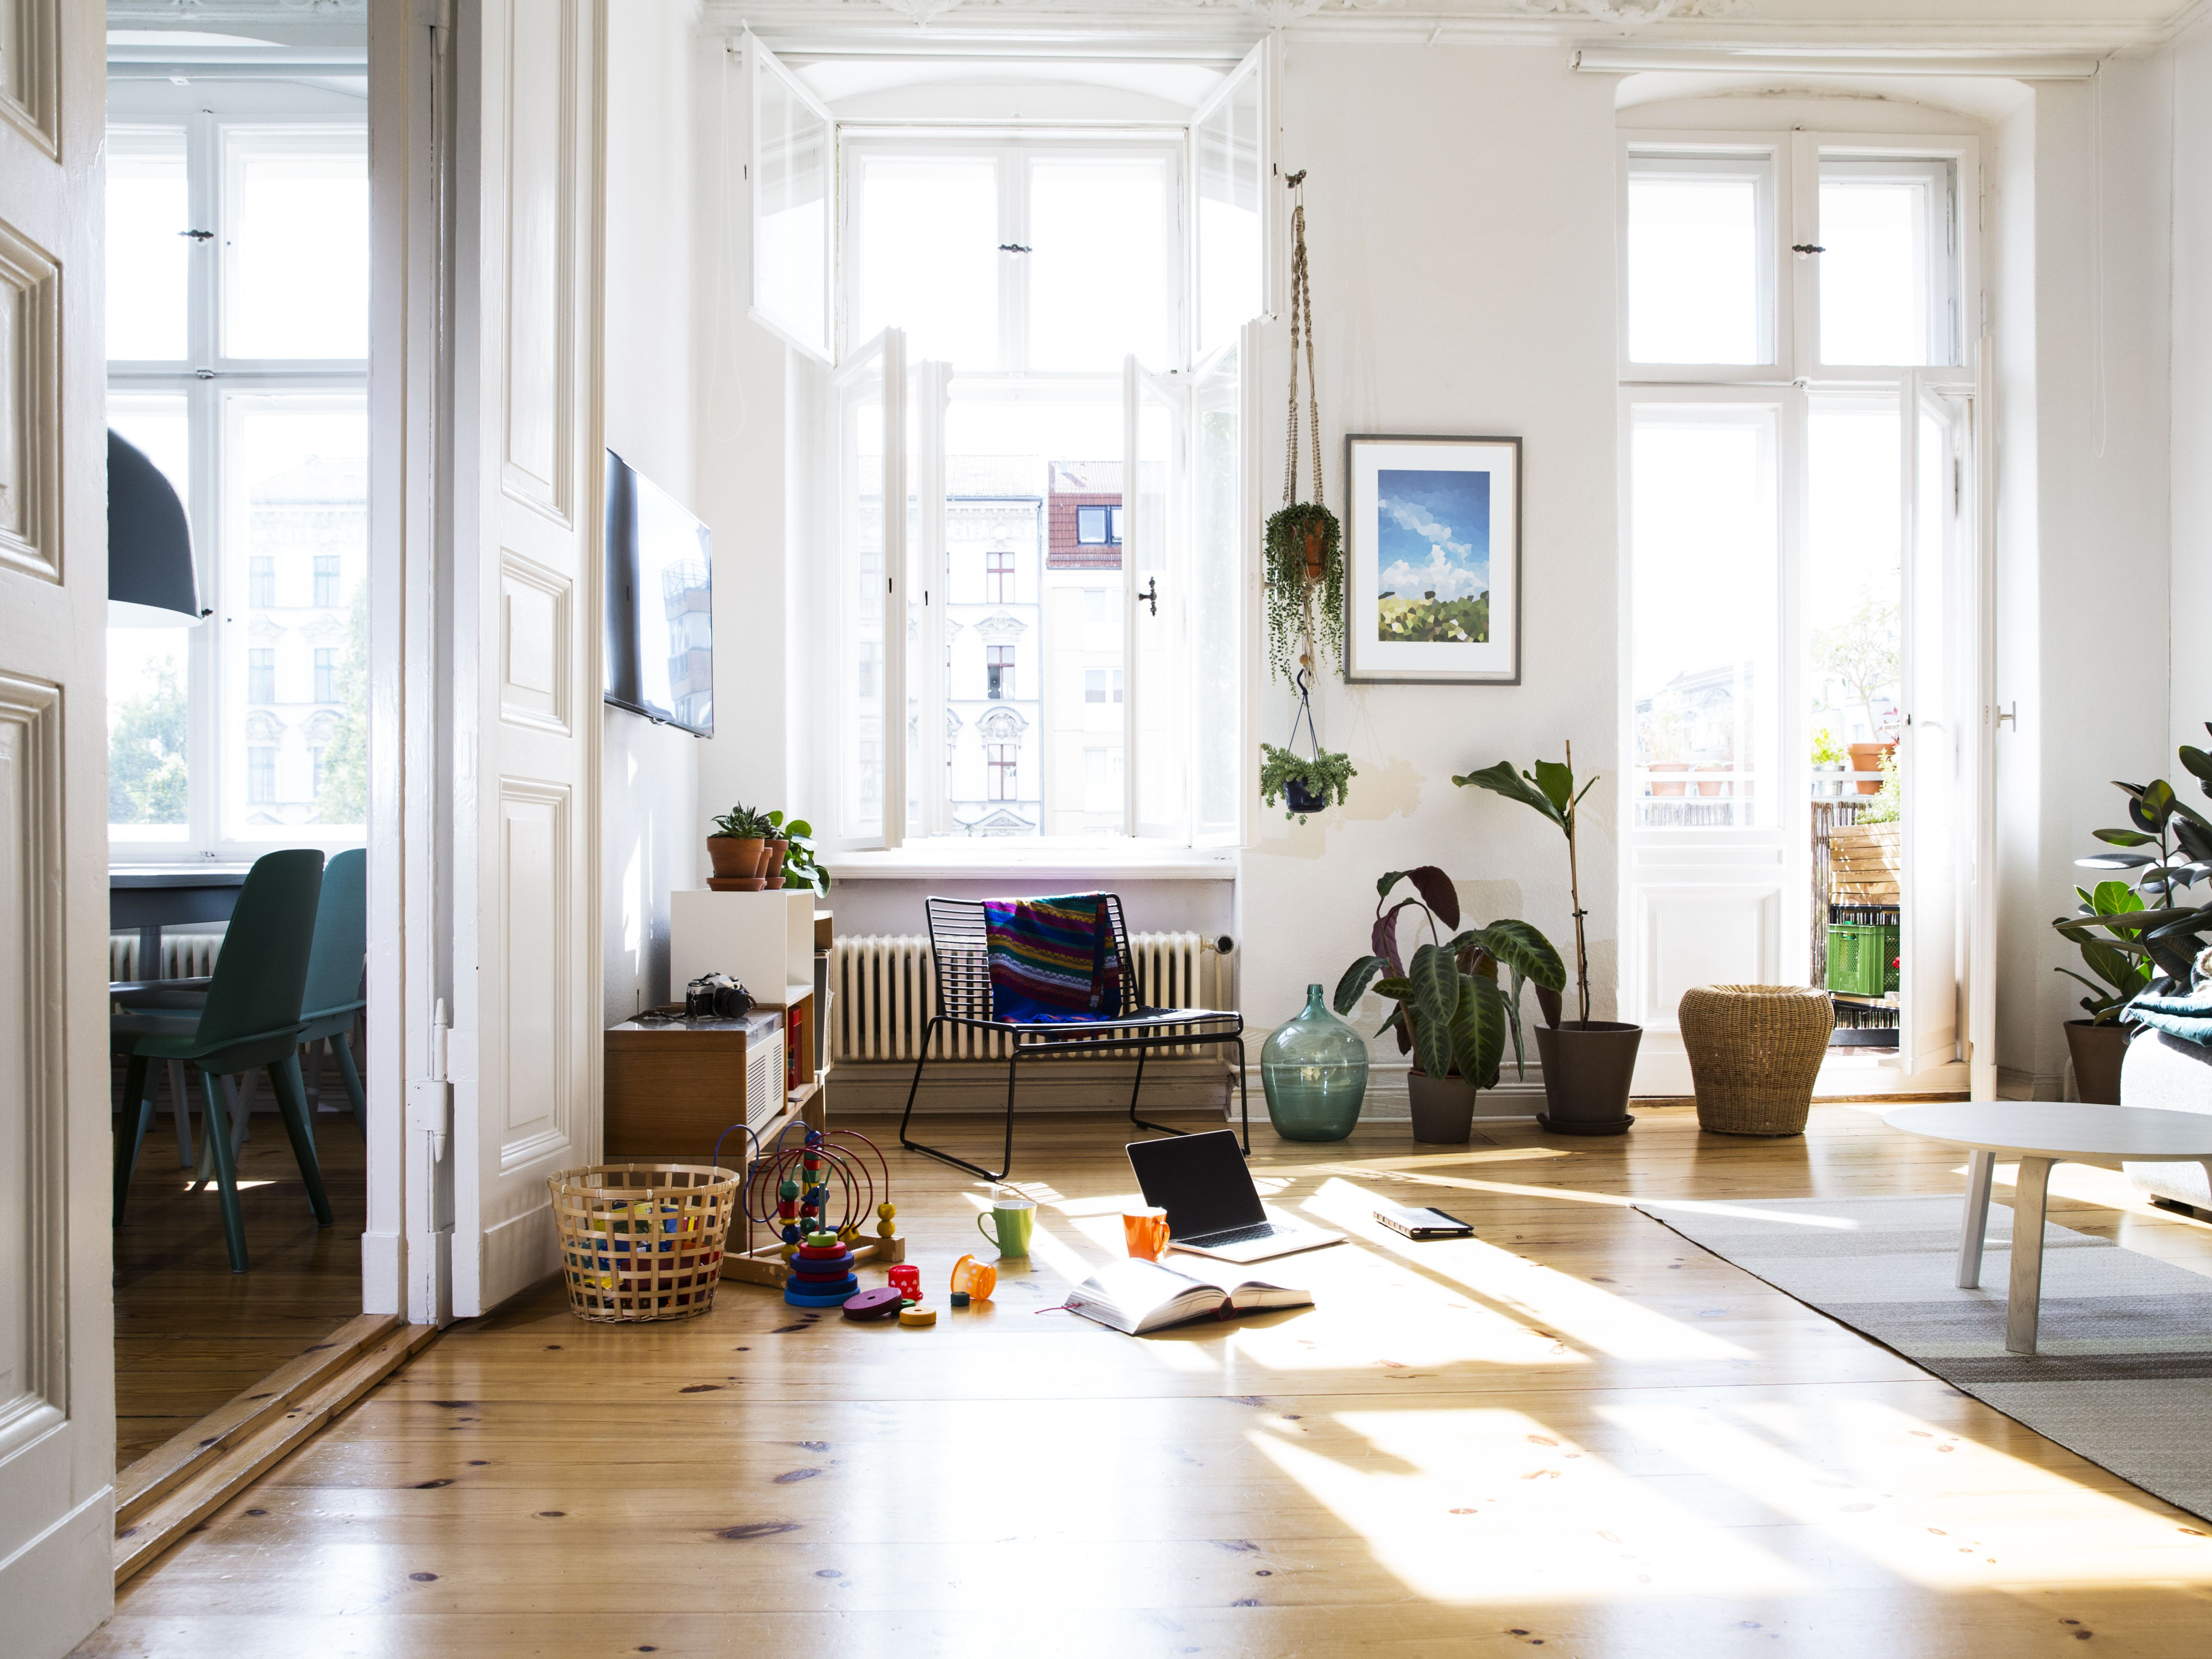 How To Ruin A Perfectly Good Living Room